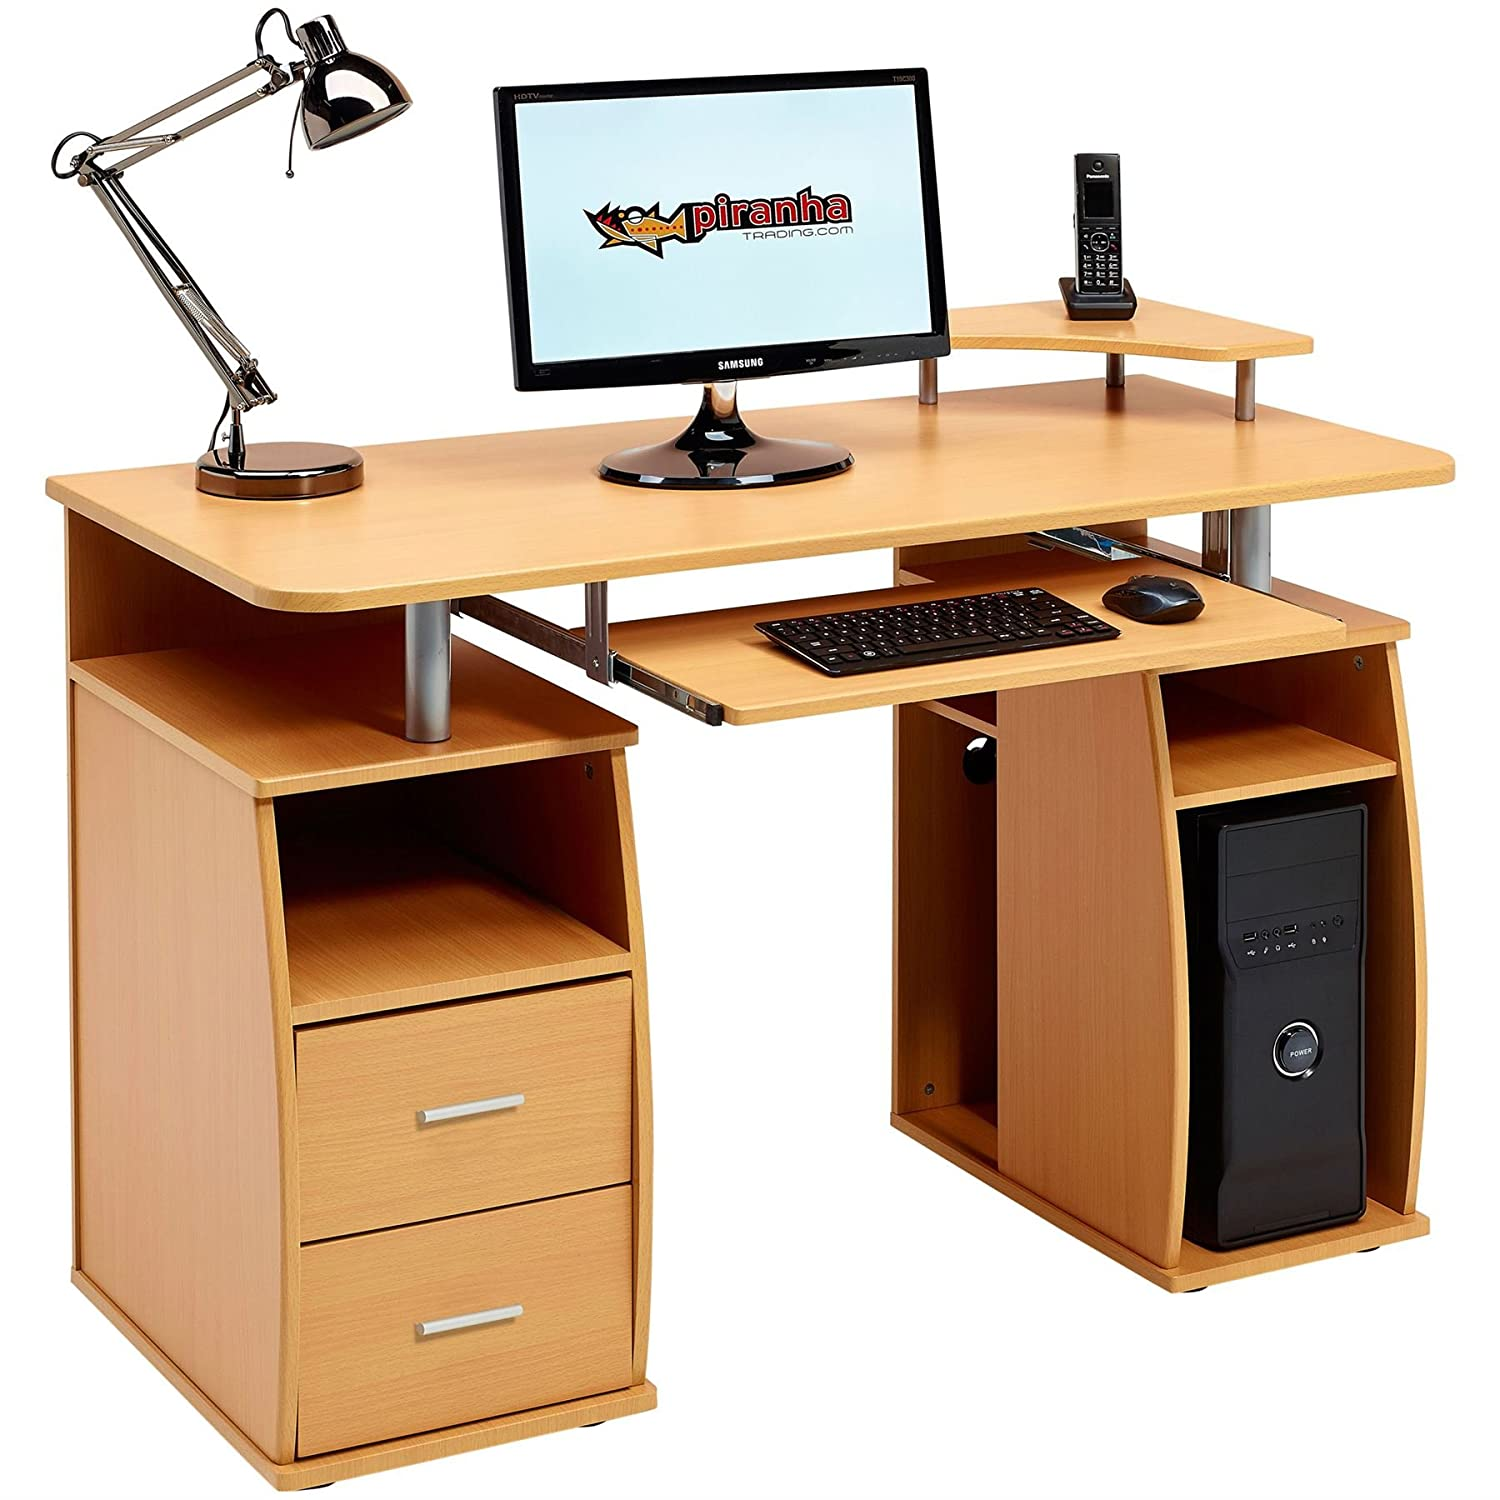 Computer Desk with Shelves, Cupboard and Drawers for Home Office in Oak Effect - Piranha Furniture Tetra PC 5o